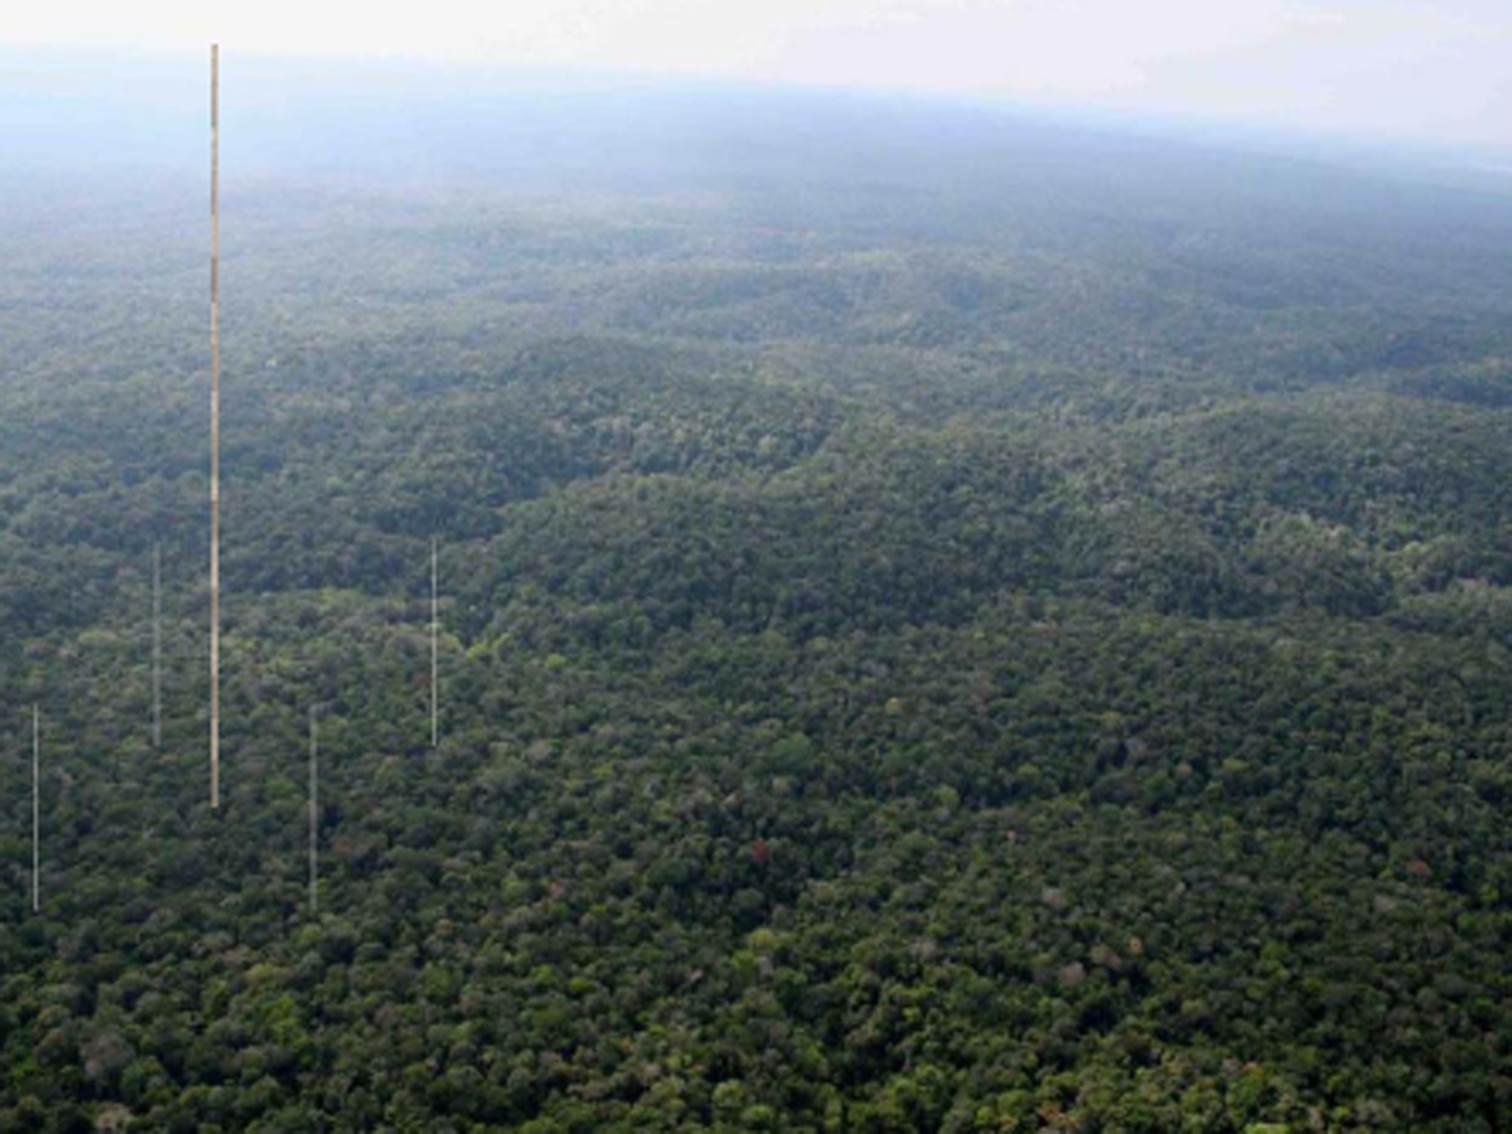 "<span  class=""uc_style_uc_tiles_grid_image_elementor_uc_items_attribute_title"" style=""color:#ffffff;"">We had the idea of a very tall tower in the middle of the Amazon rainforest, surrounded by four smaller tower. © ATTO</span>"